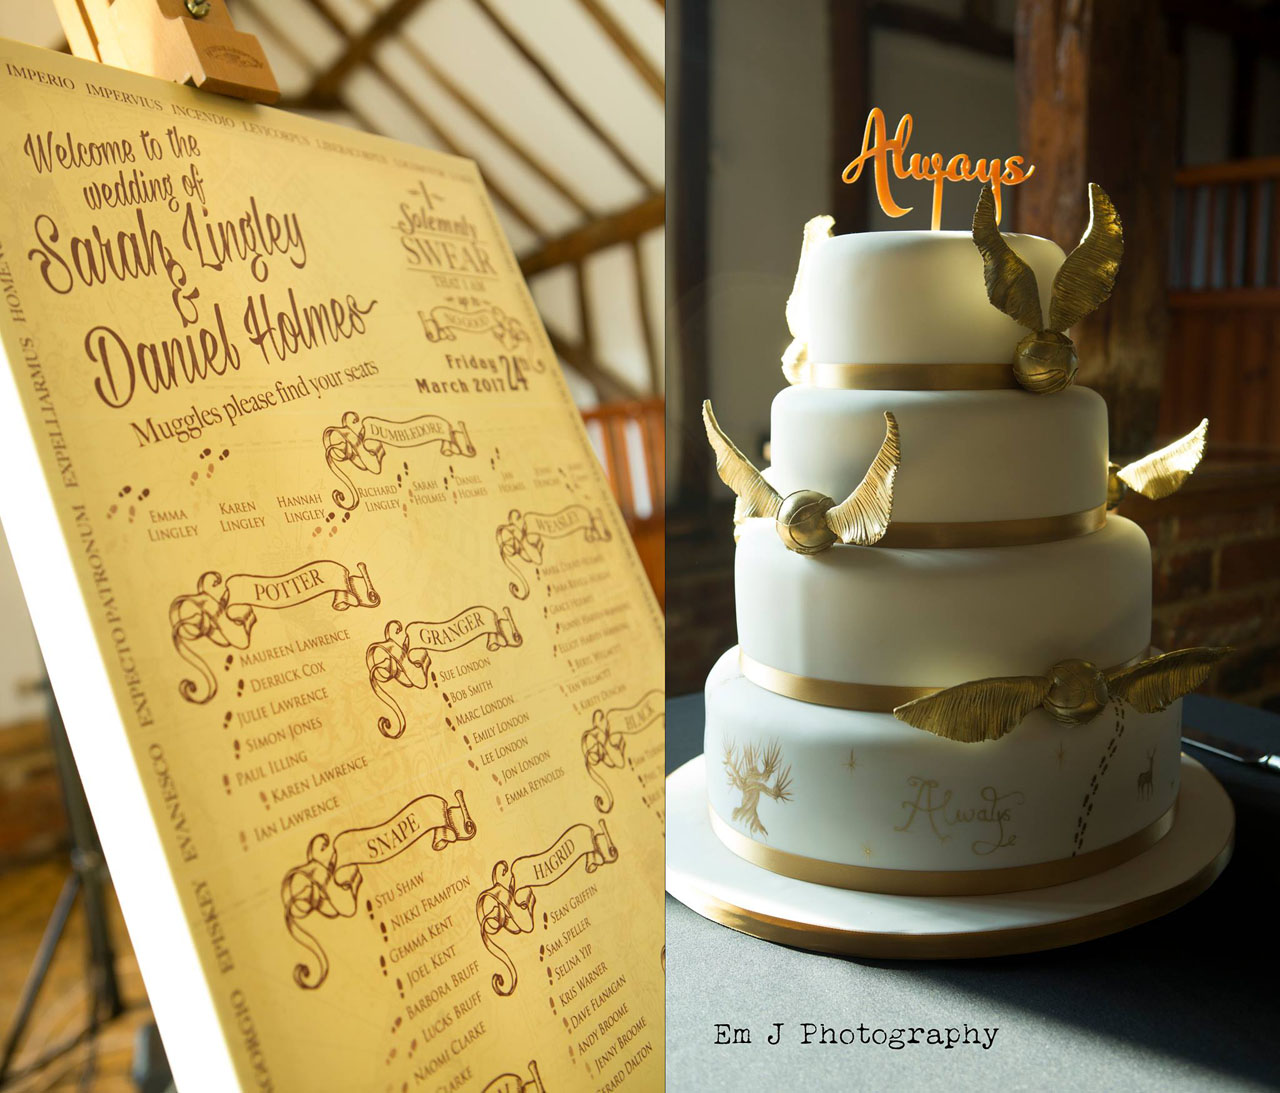 Harry Potter themed table plan and wedding cake - photo by Em J Photography, video by Veiled Productions